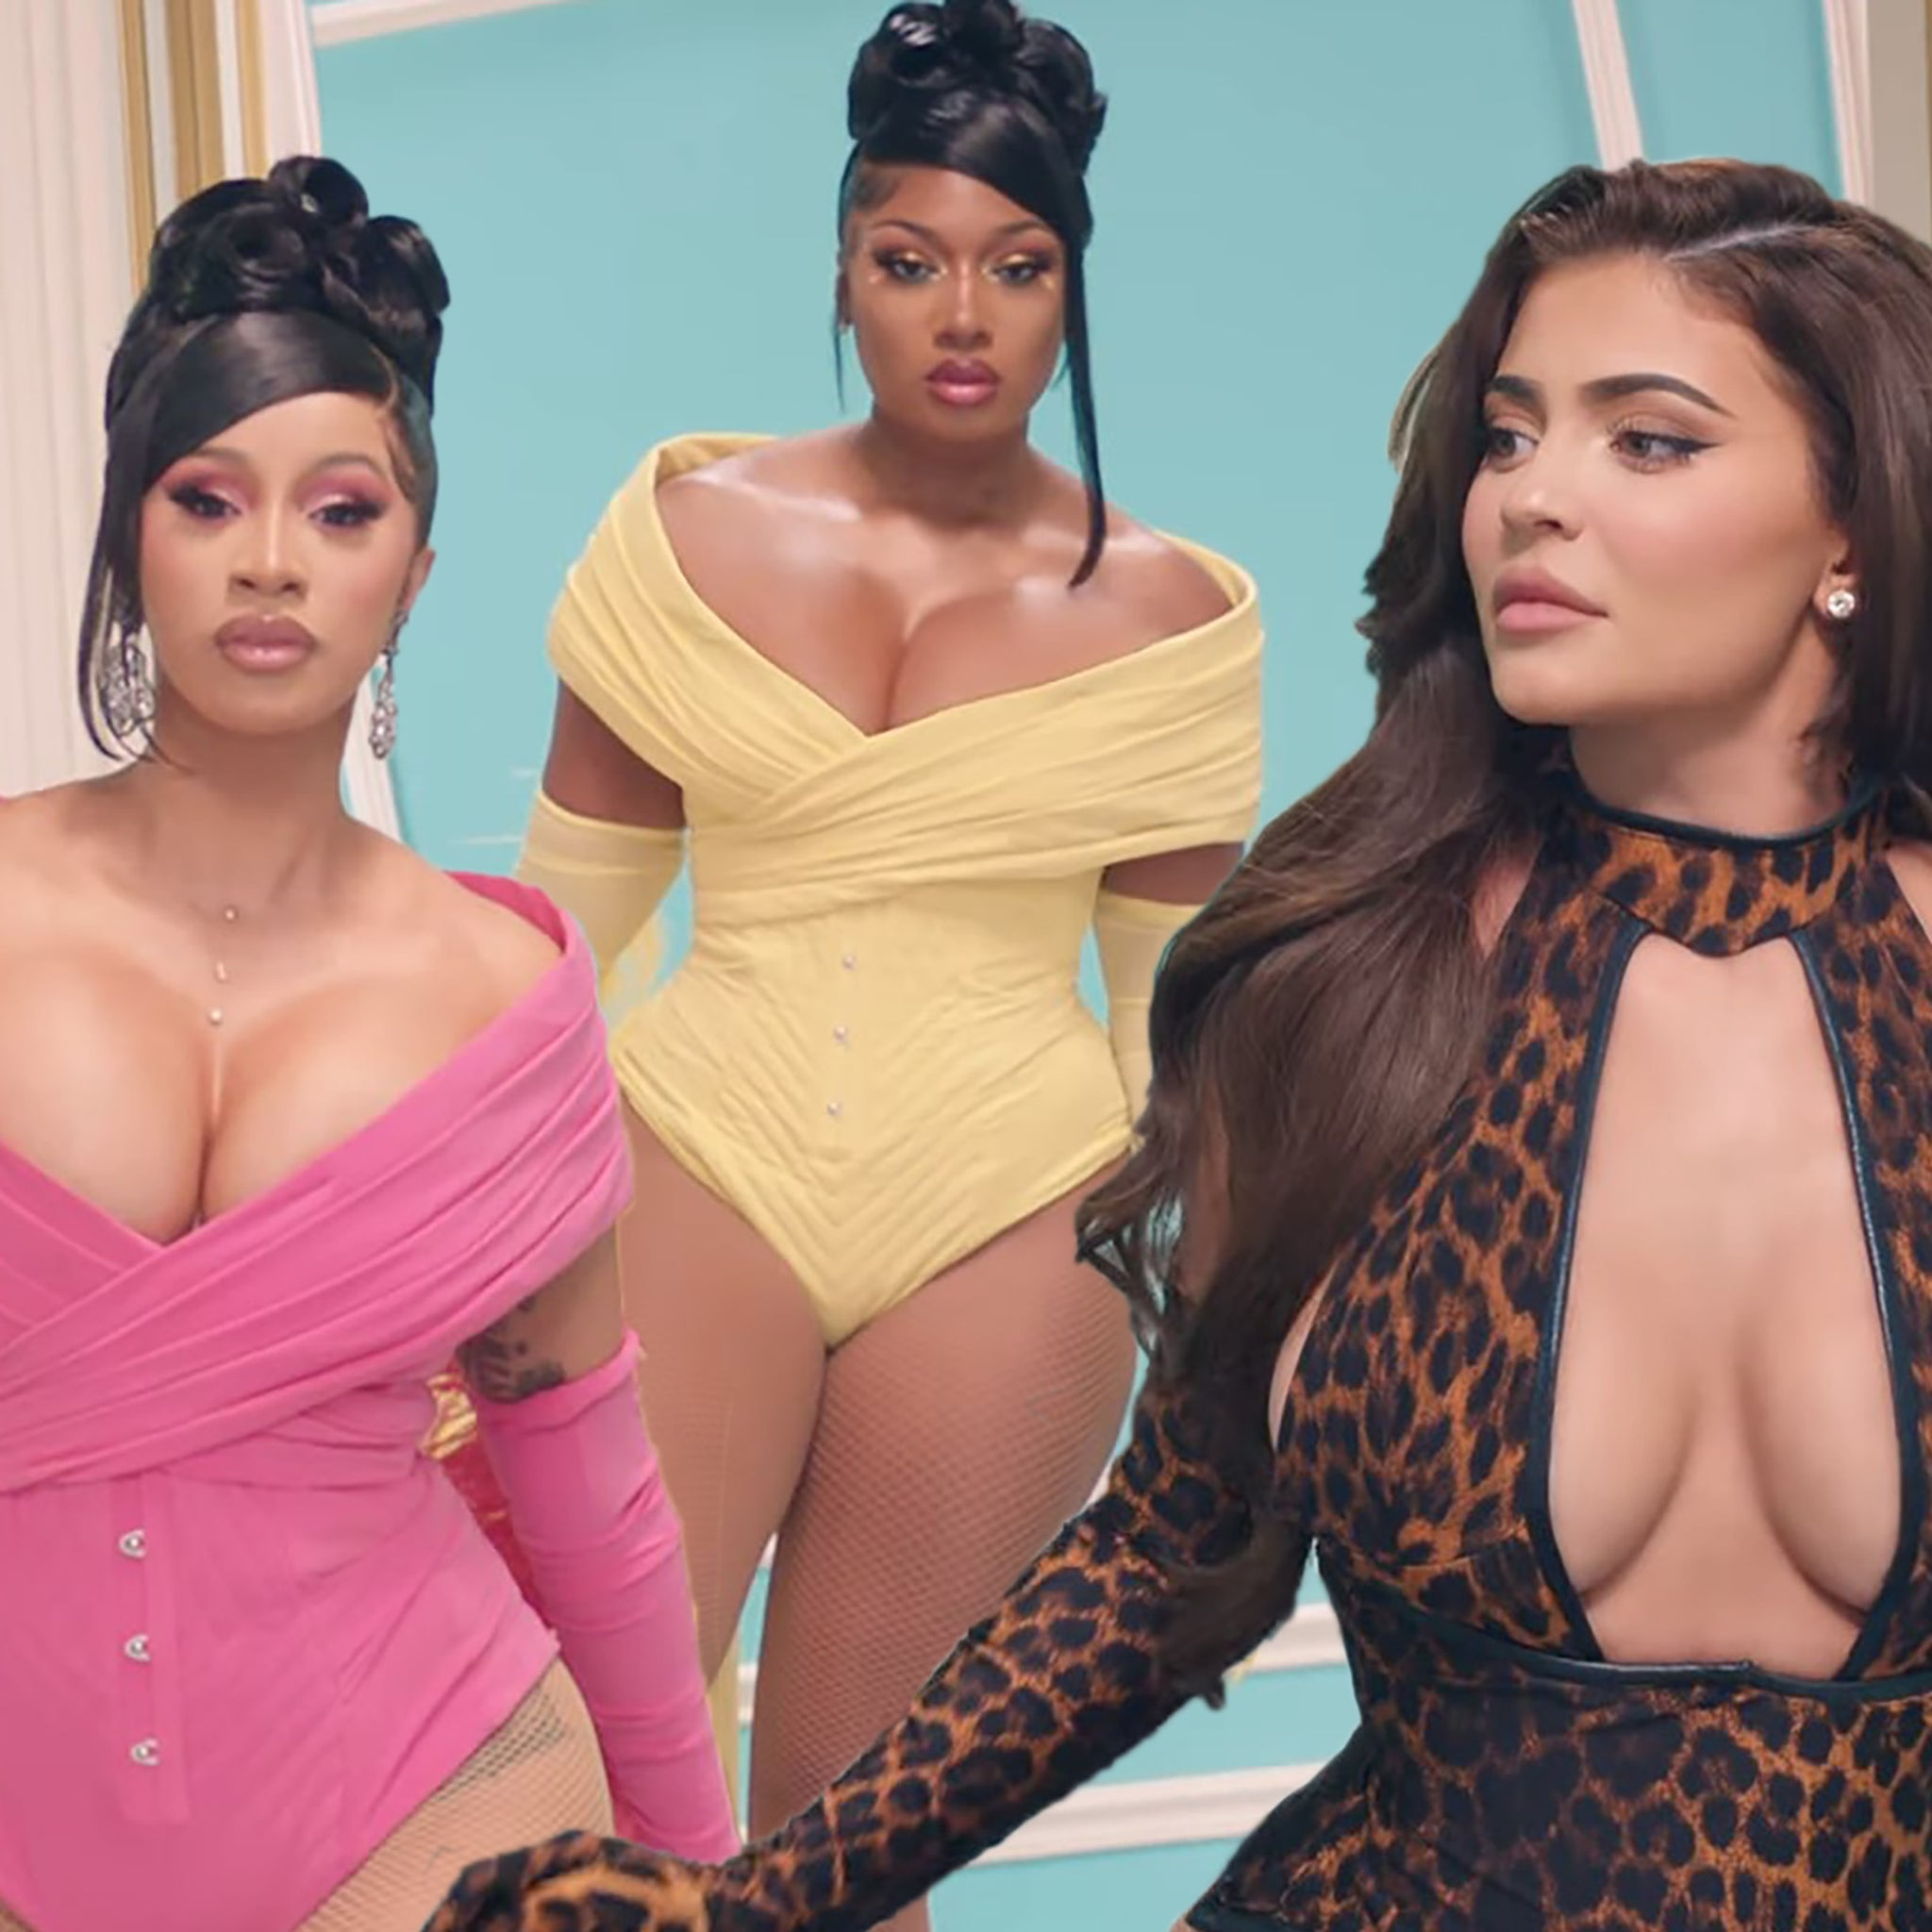 Cardi B And Megan Thee Stallion Welcome Kylie Jenner Normani And More To Wap Music Video